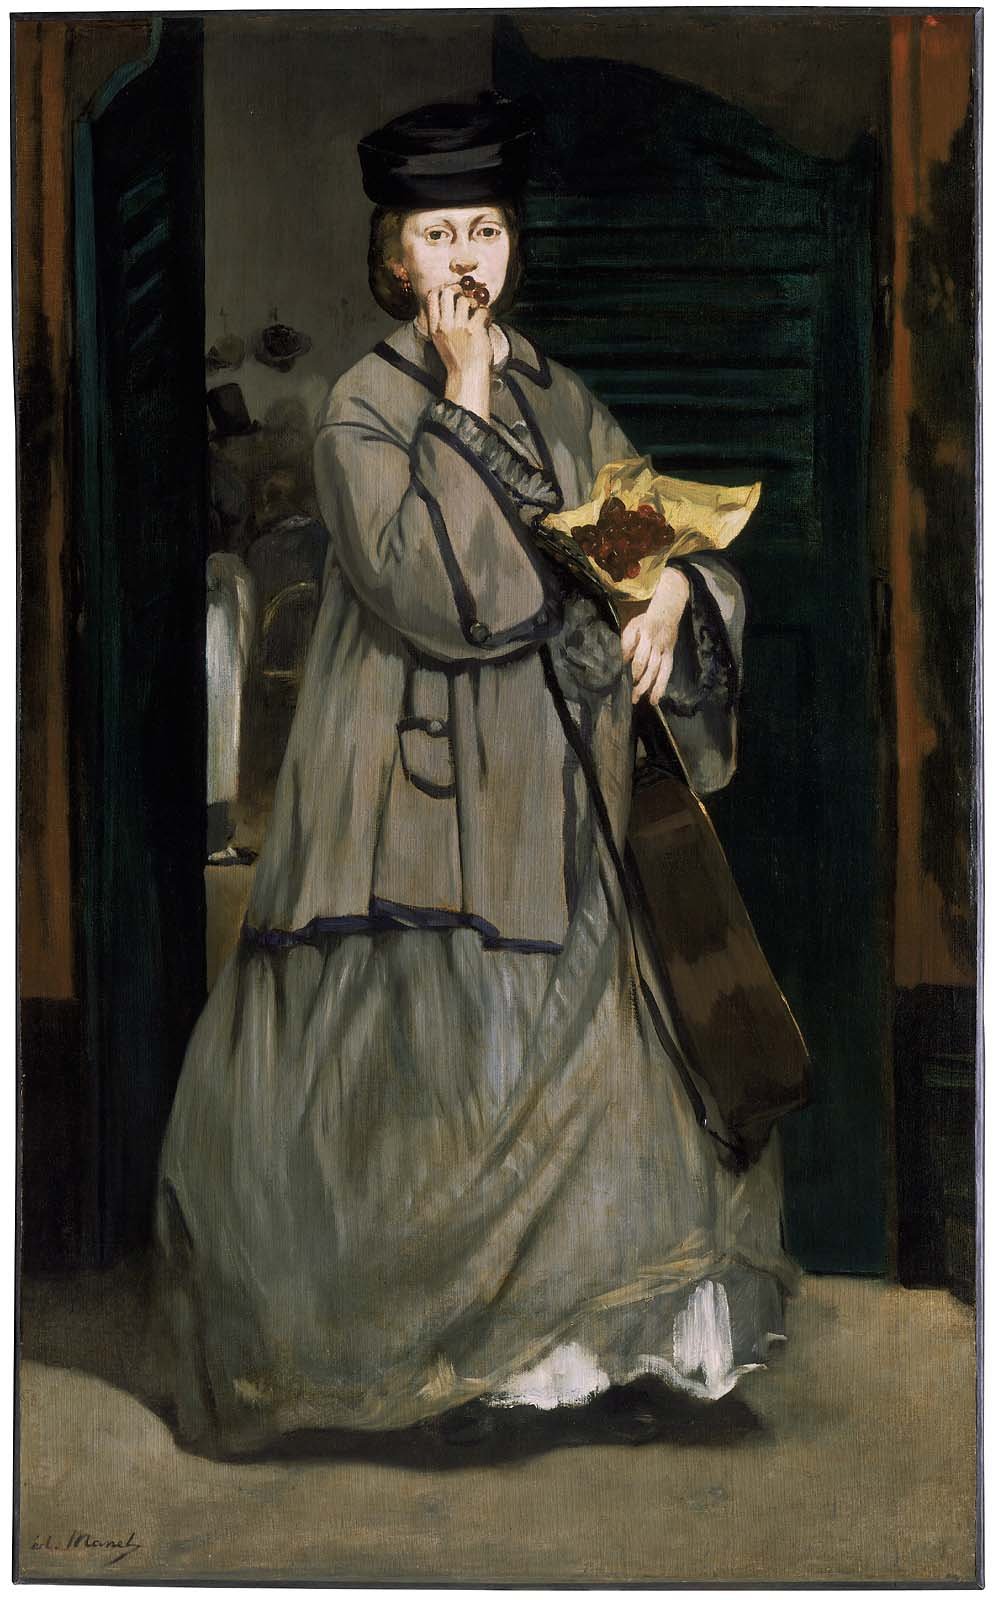 The Street Singer, Edouard Manet, c. 1862, 67 3/8 x 41 5/8 in, Oil on canvas